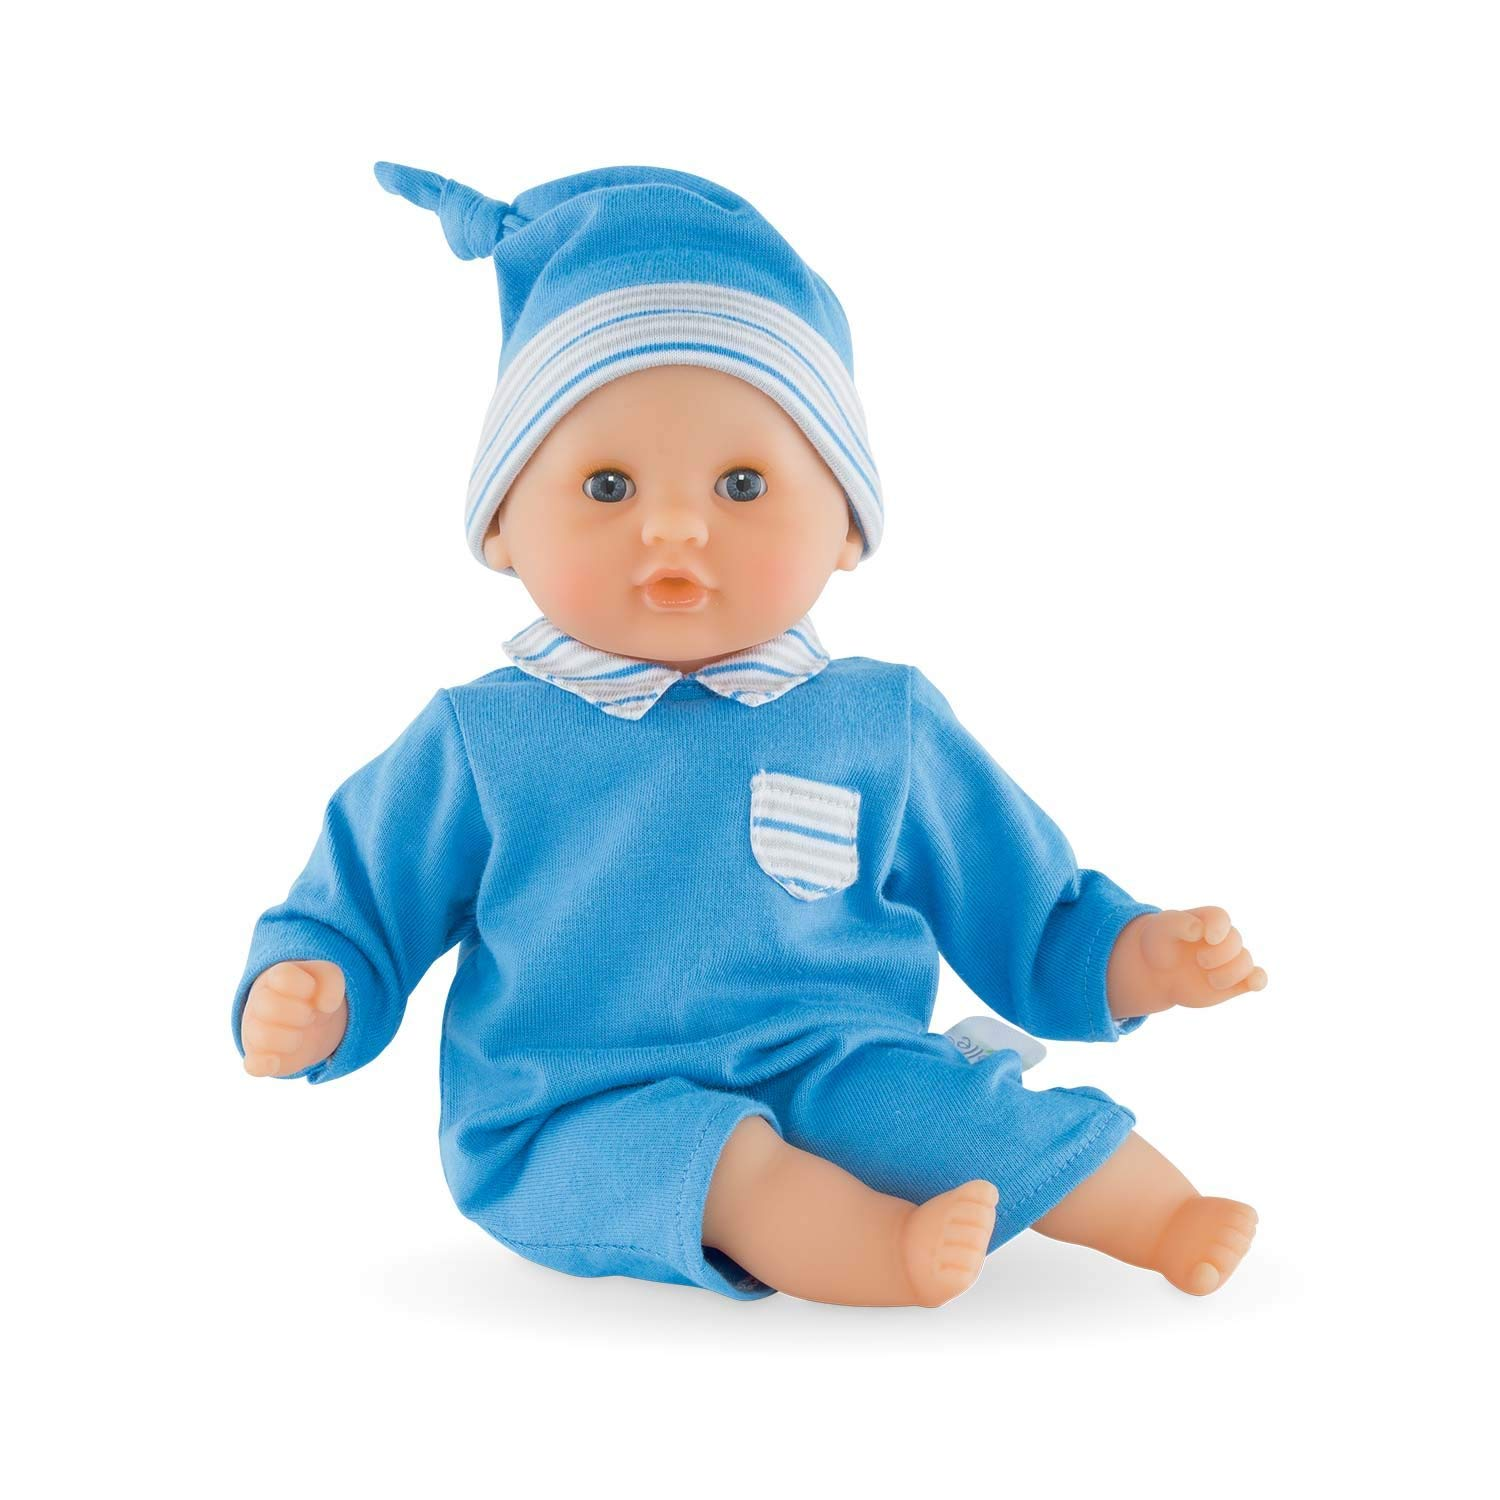 Mon Premier Bébé Calin Blue Baby Doll, Colin is the perfect my first baby doll soft bean filled body allows... by